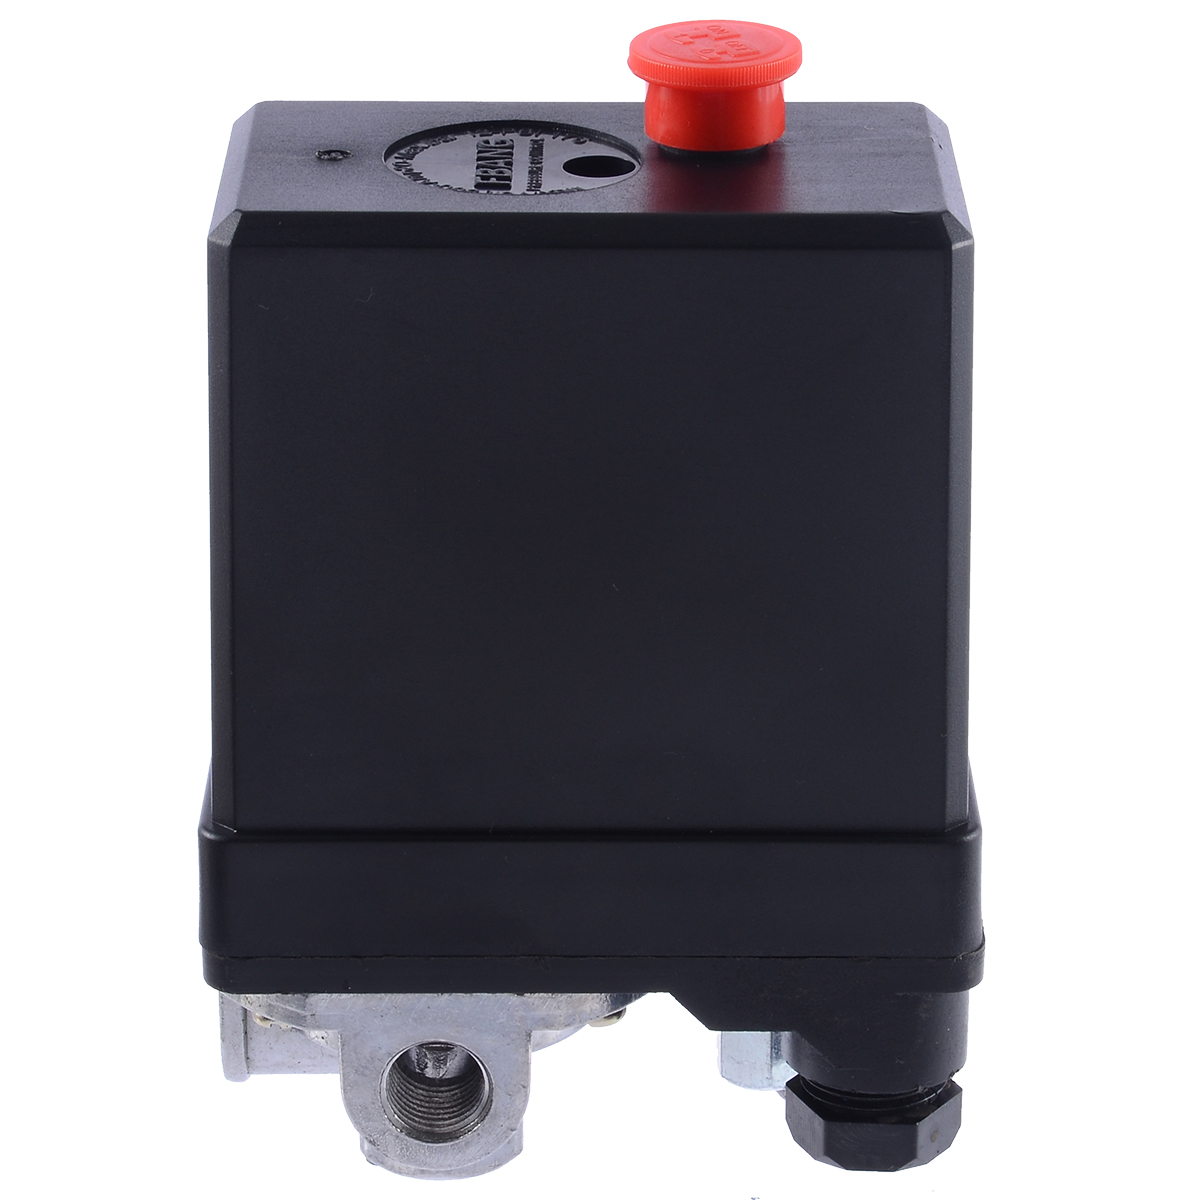 3-phase 380/400V Heavy Duty Air Compressor Pressure Switch Control Valve Air Compressor Pressure Switch Control3-phase 380/400V Heavy Duty Air Compressor Pressure Switch Control Valve Air Compressor Pressure Switch Control